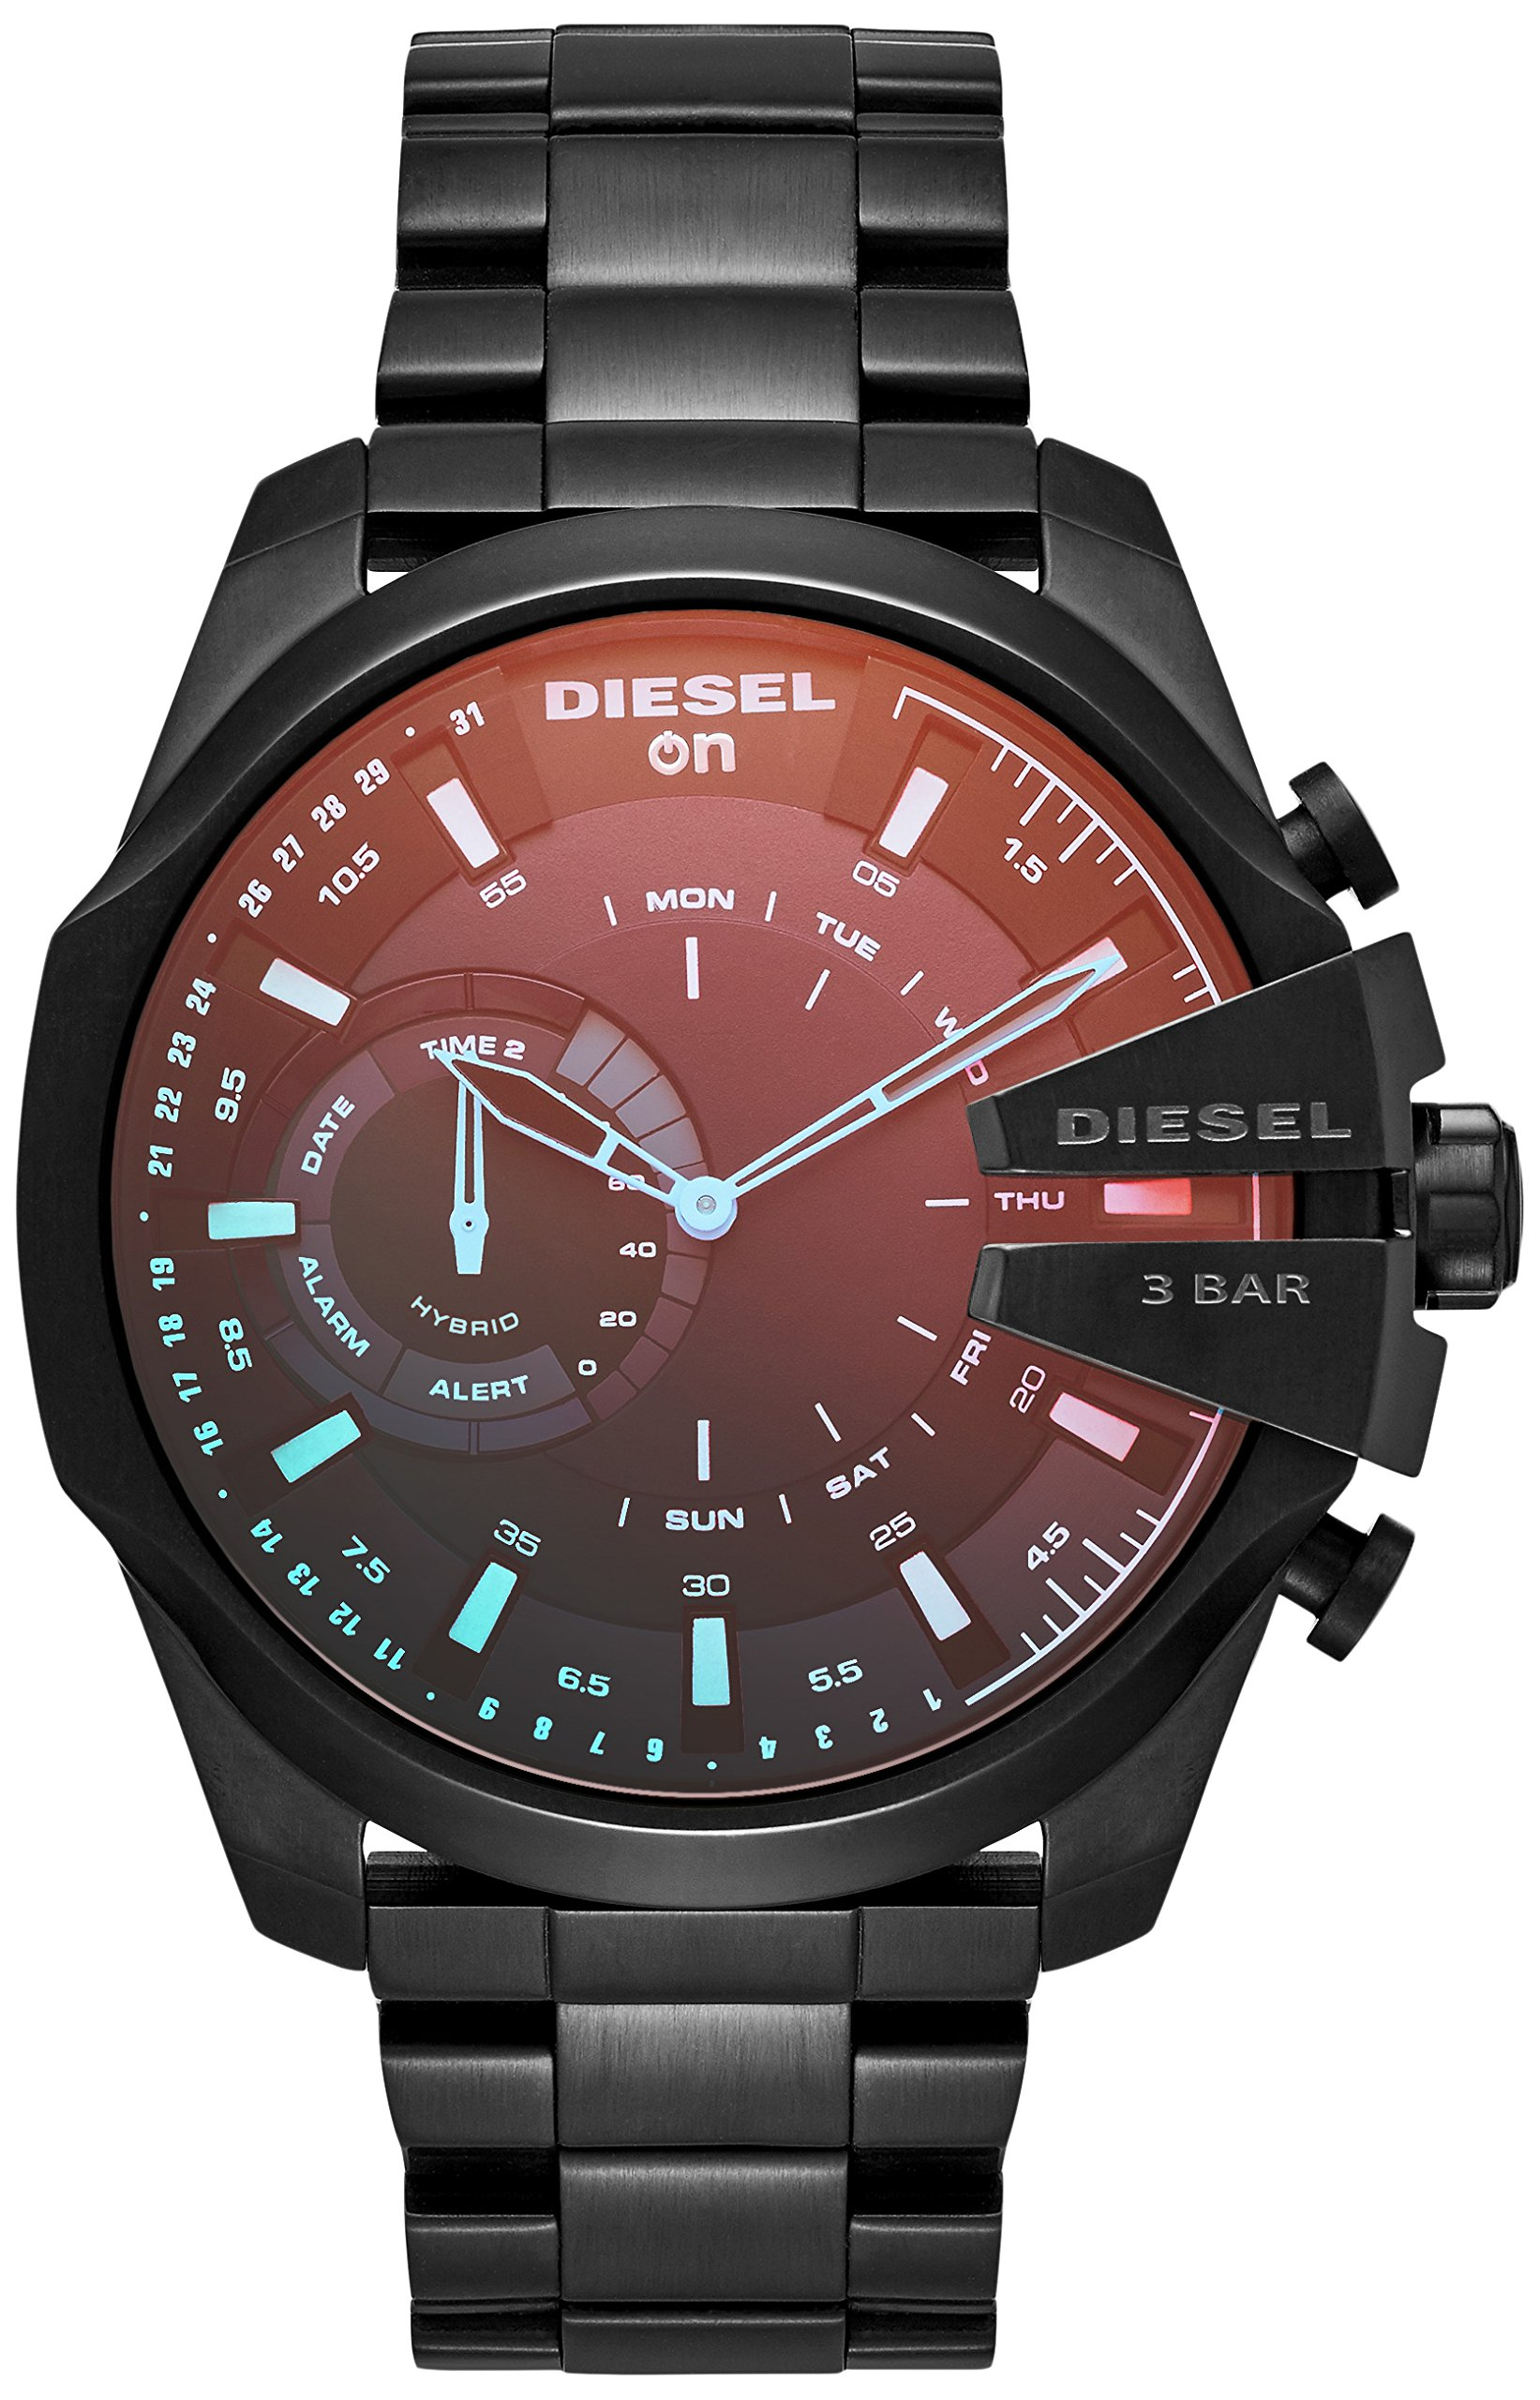 Diesel Smart Watch (Model: DZT1011